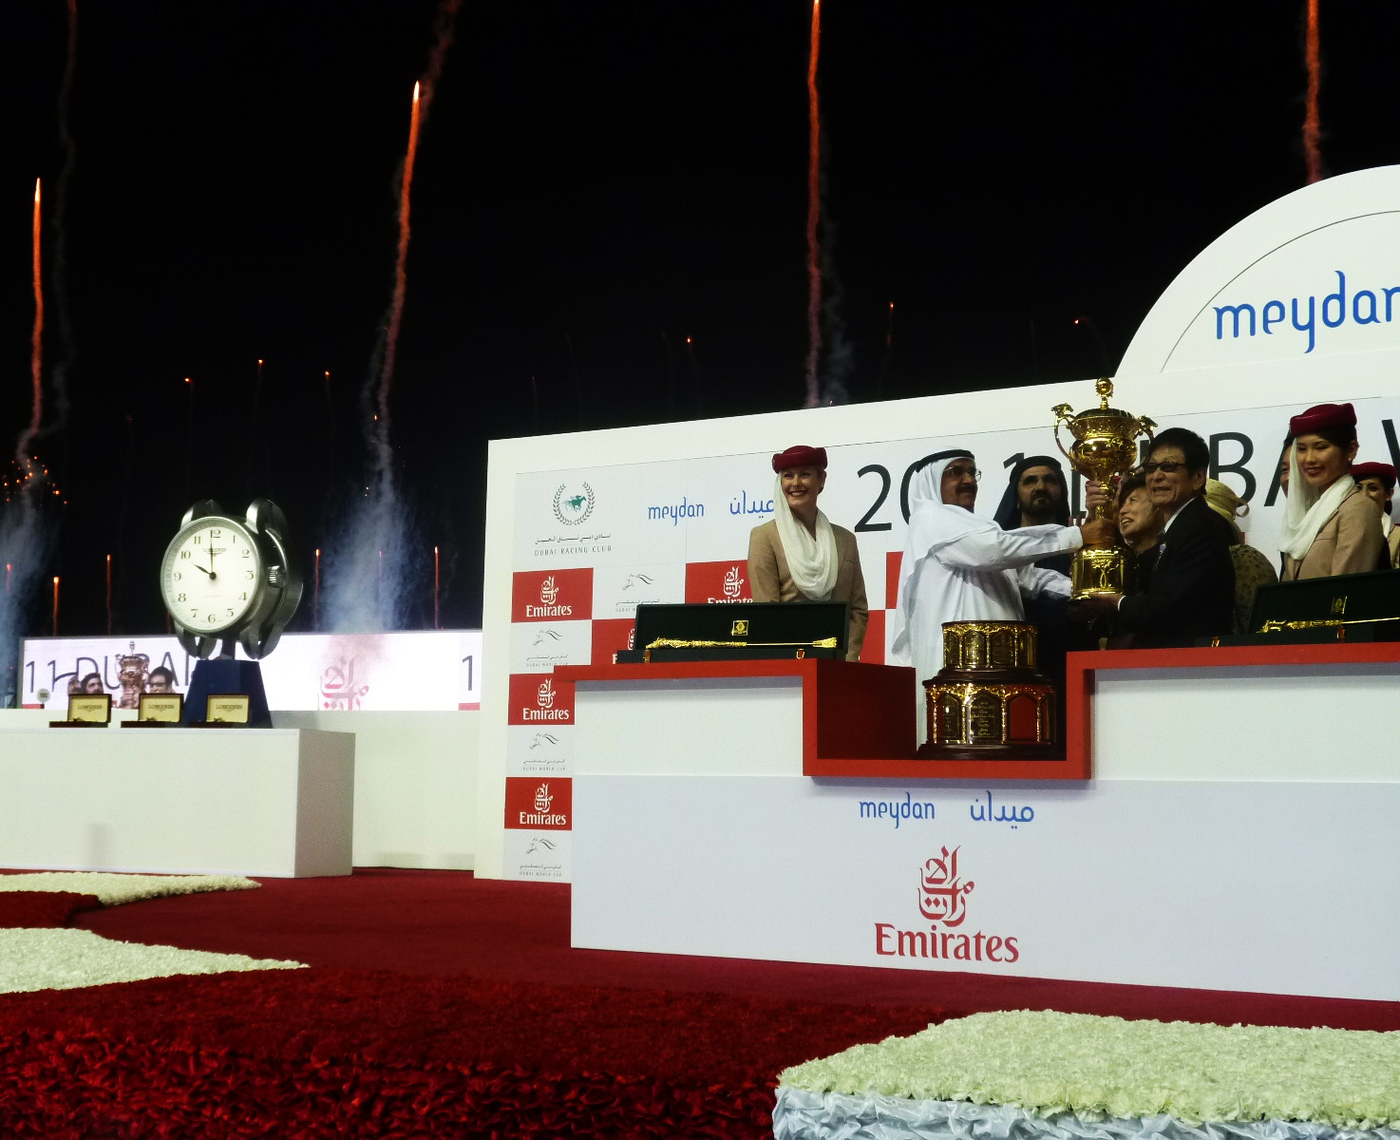 Longines Flat Racing Event: Elegance met performance at the Dubai World Cup 2011 2